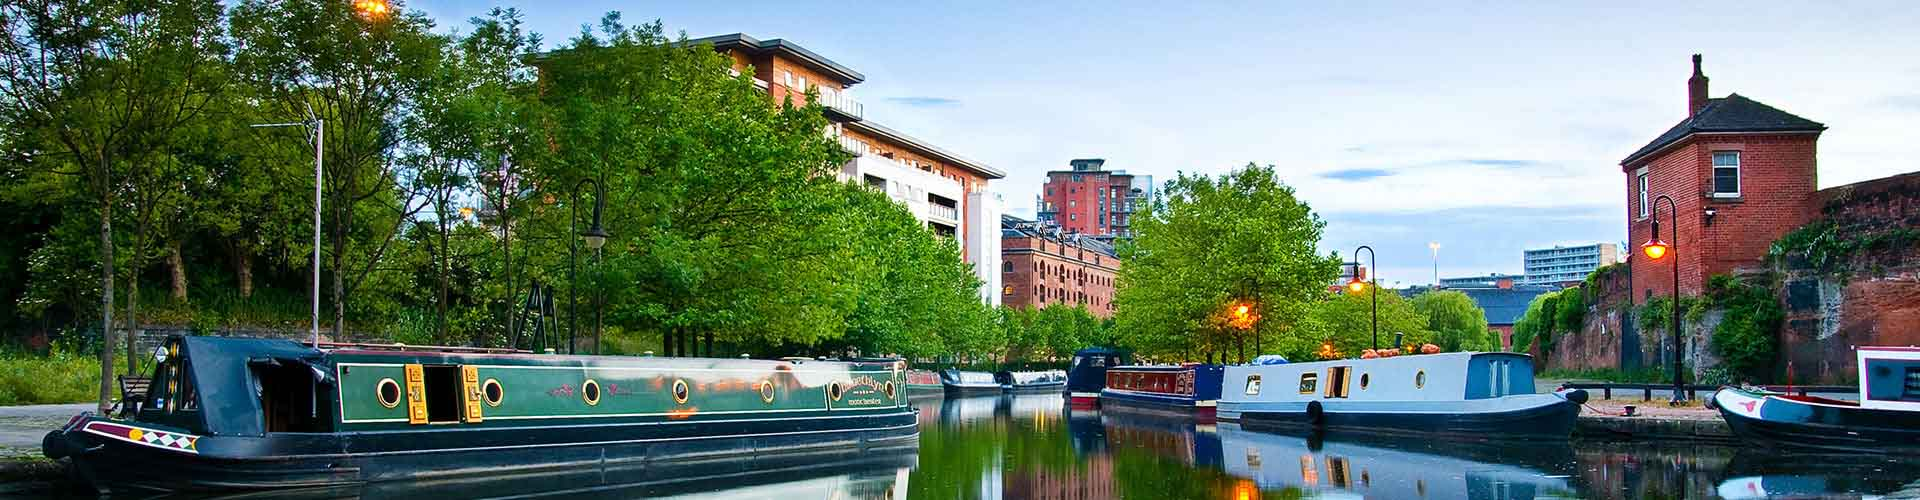 Manchester – Hostels in the Gorton district. Maps for Manchester, Photos and Reviews for each hostel in Manchester.